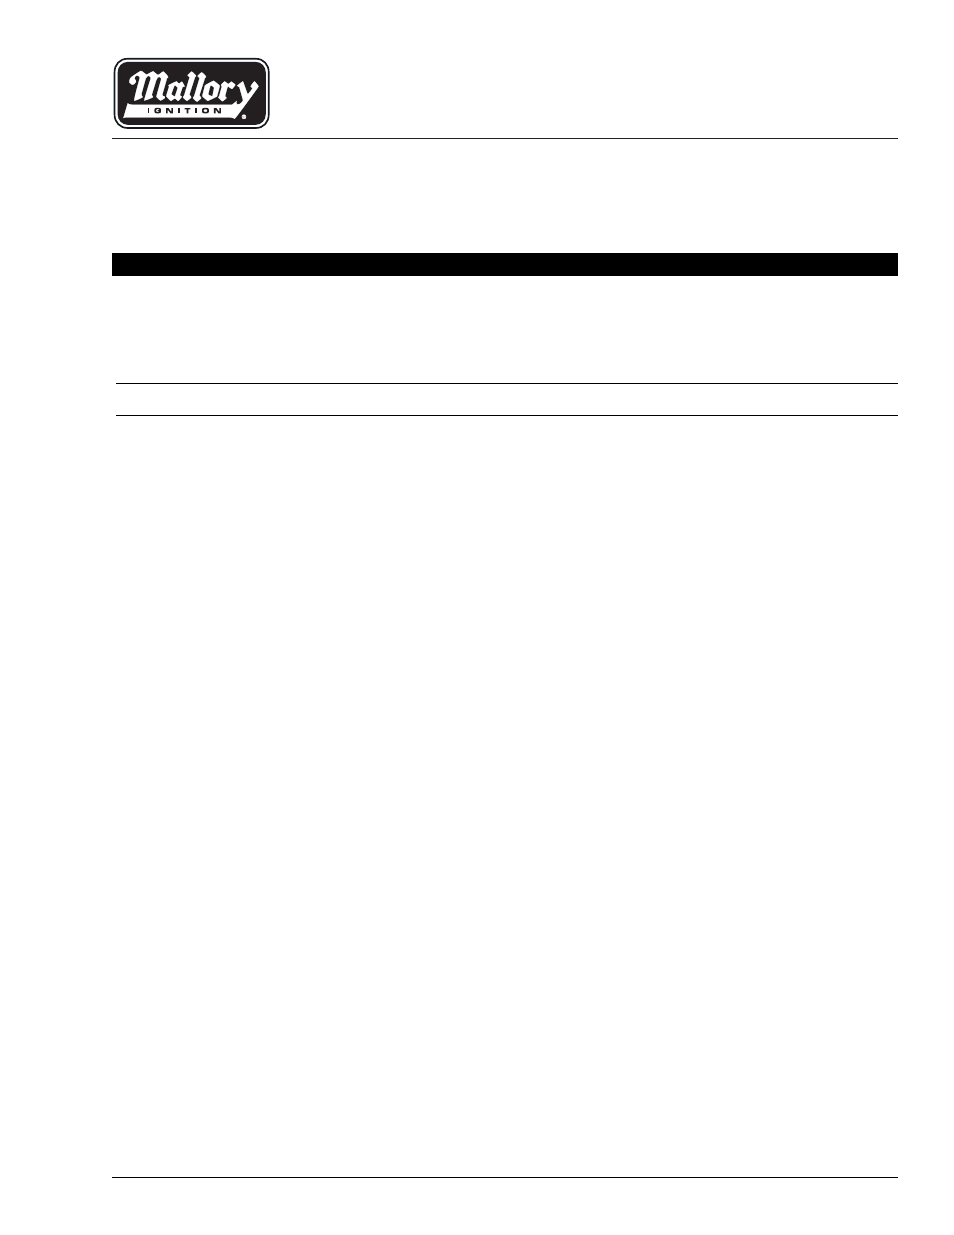 hight resolution of mallory ignition mallory unilite distributor user manual 13 pages unilite ignition wiring diagram coil and distributor